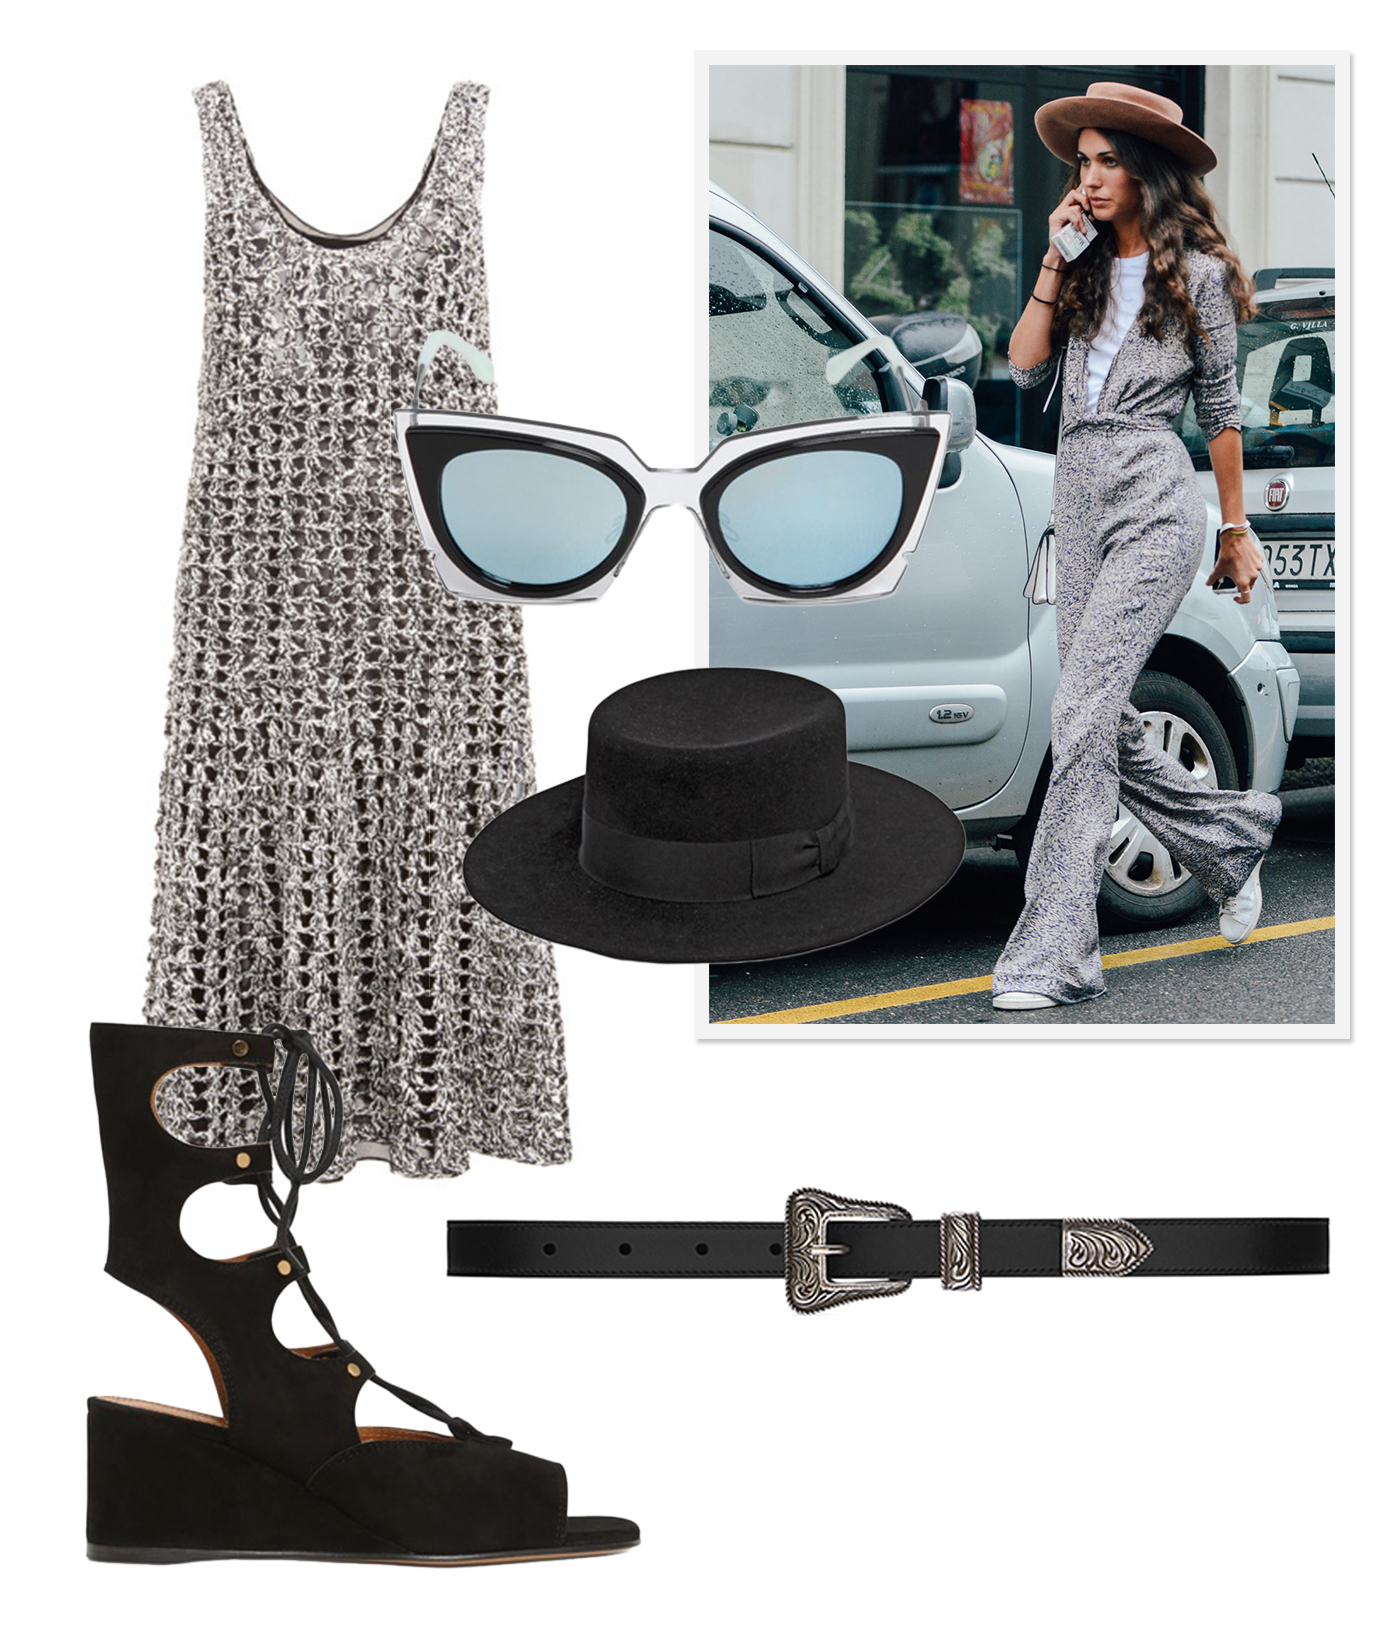 fashion-tastemakers-outfit-ideas-01.jpg